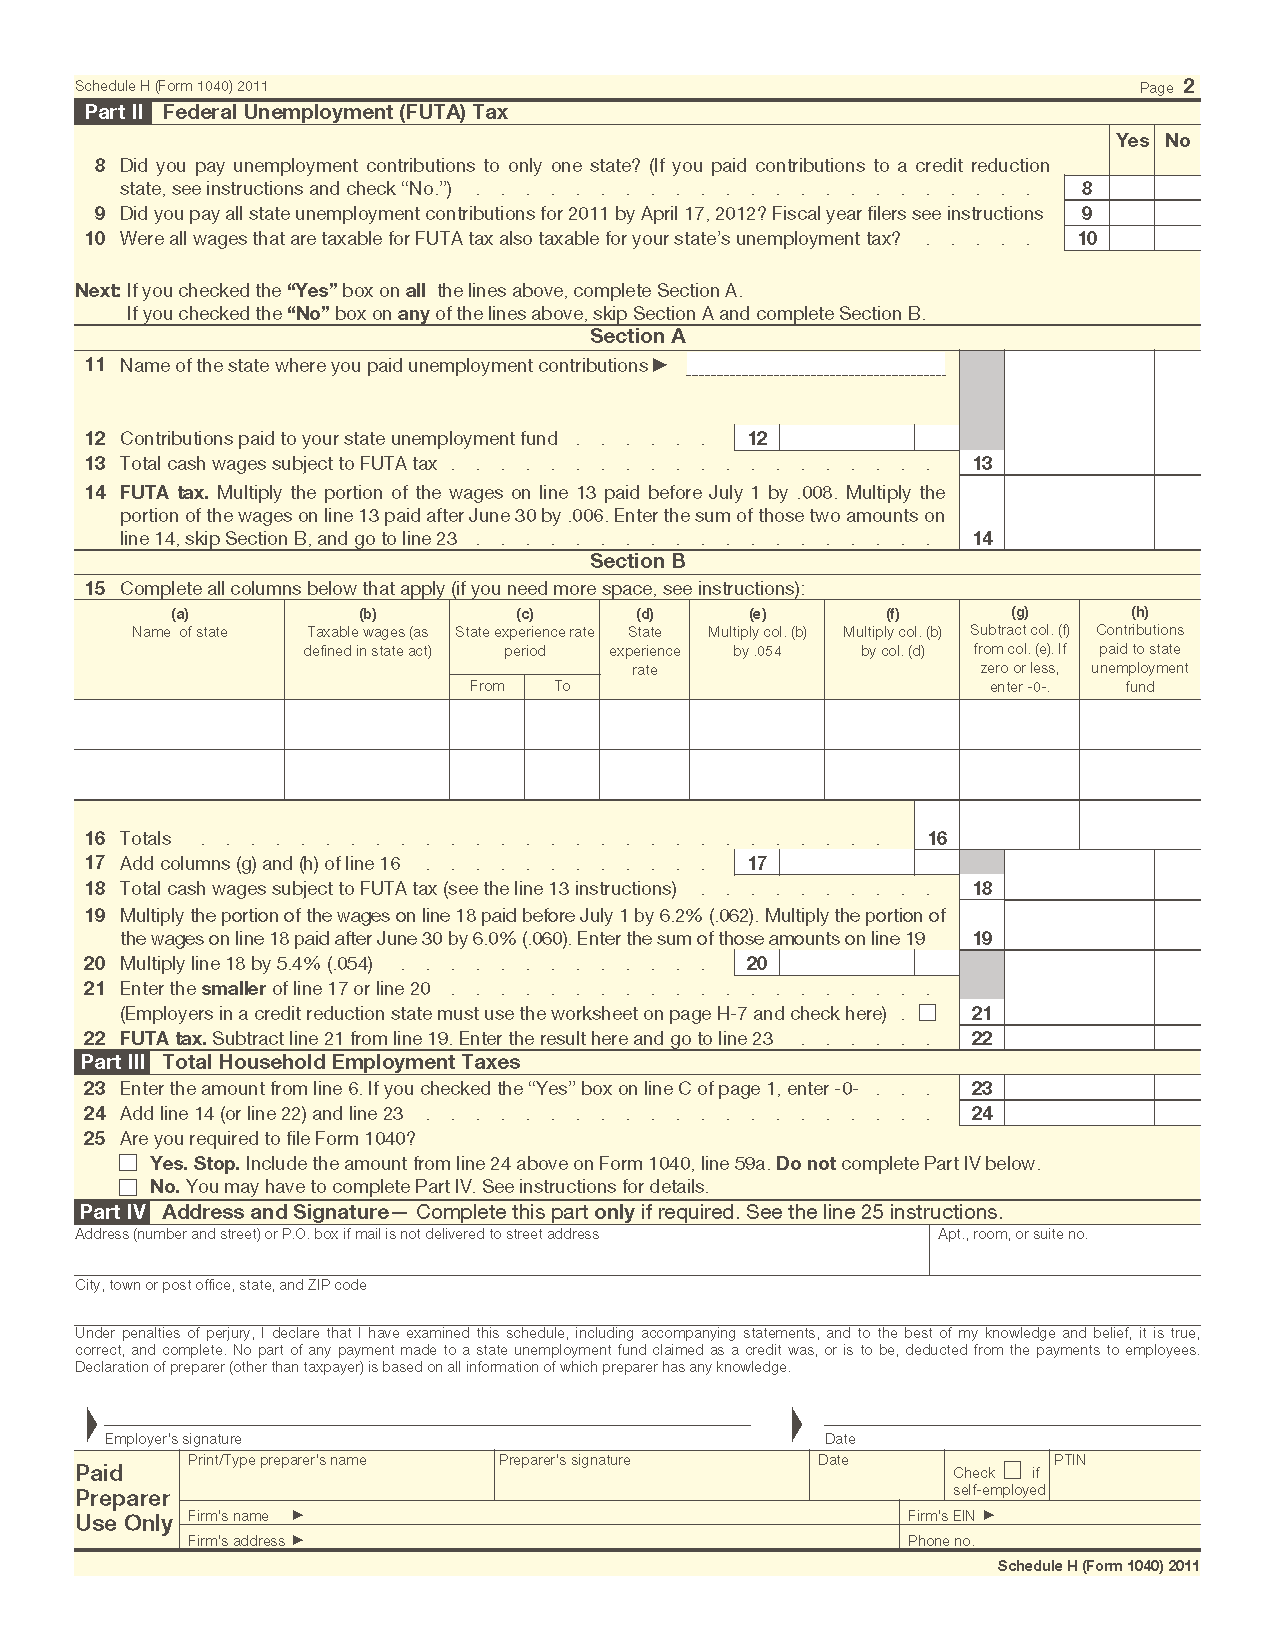 Irsgov Form Printable File Instructions For